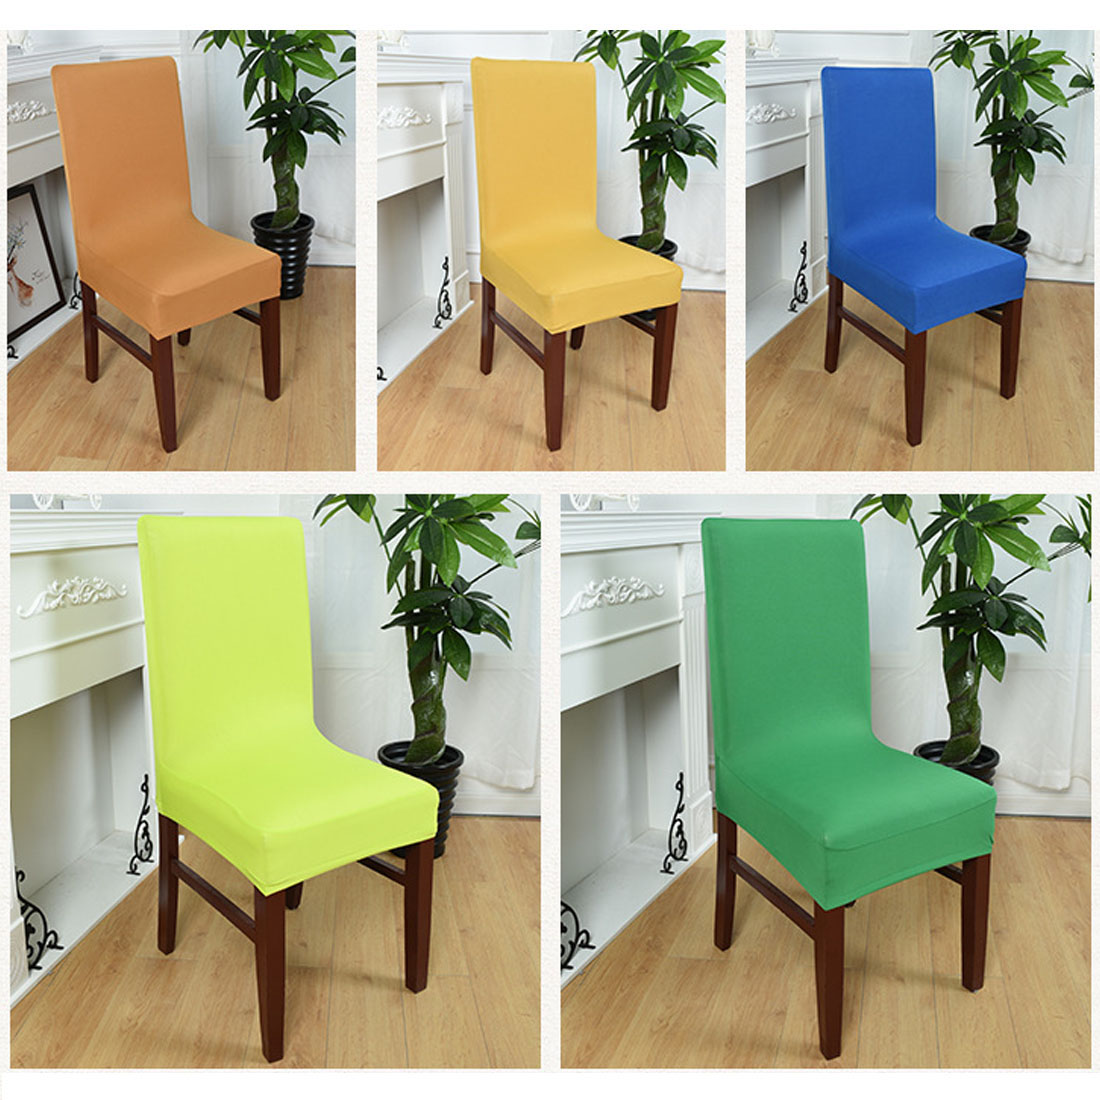 Office Chair Spandex Strech Dining Room Chair Covers Protector Slipcover Decor Housse De Chaise For Sillas Bone Silla Gorras